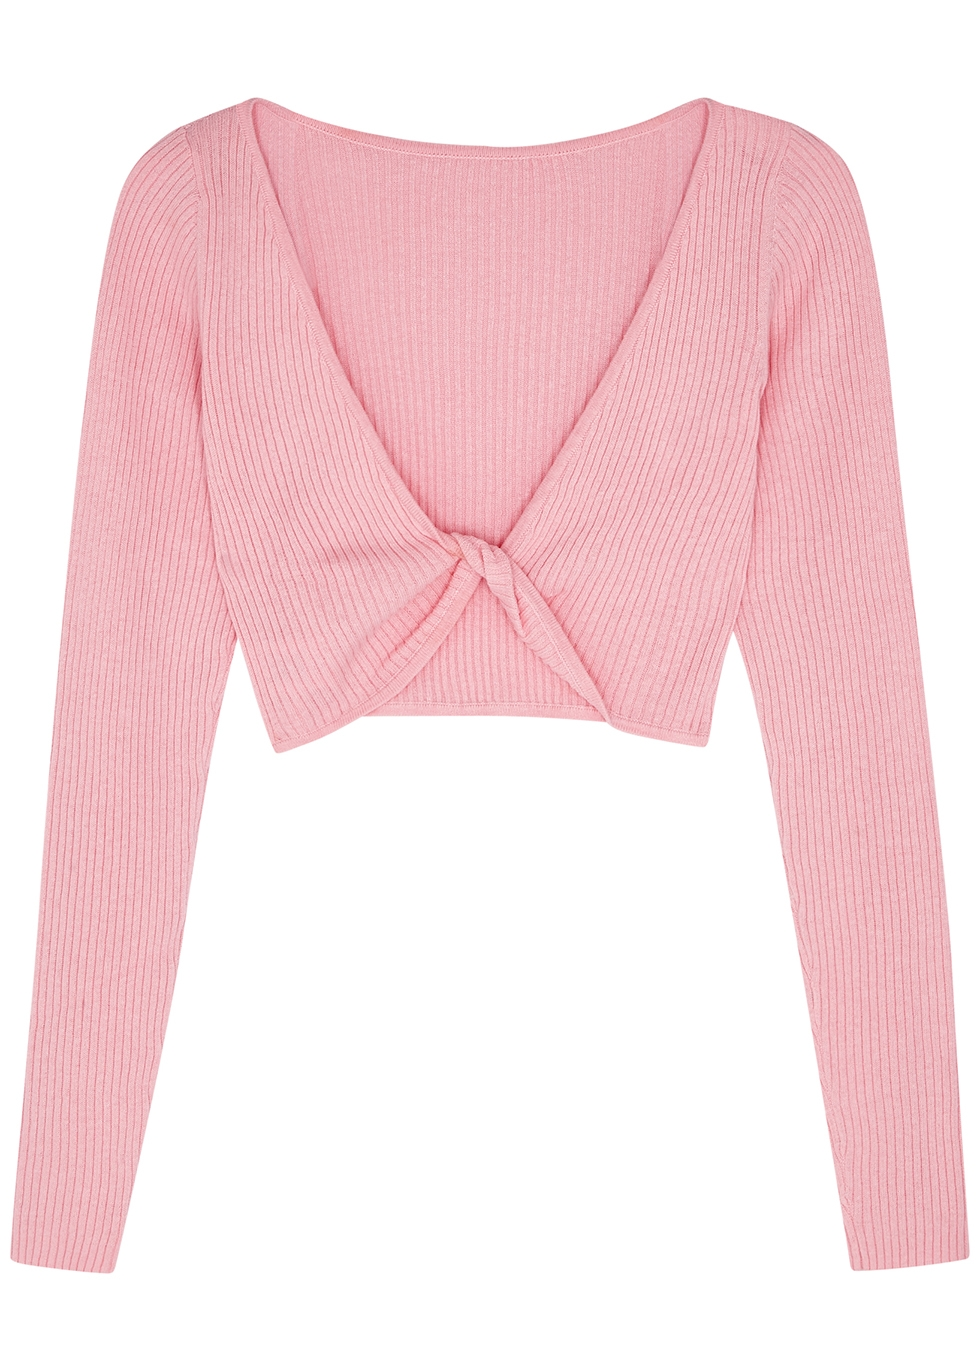 Riviera pink cropped ribbed-knit top